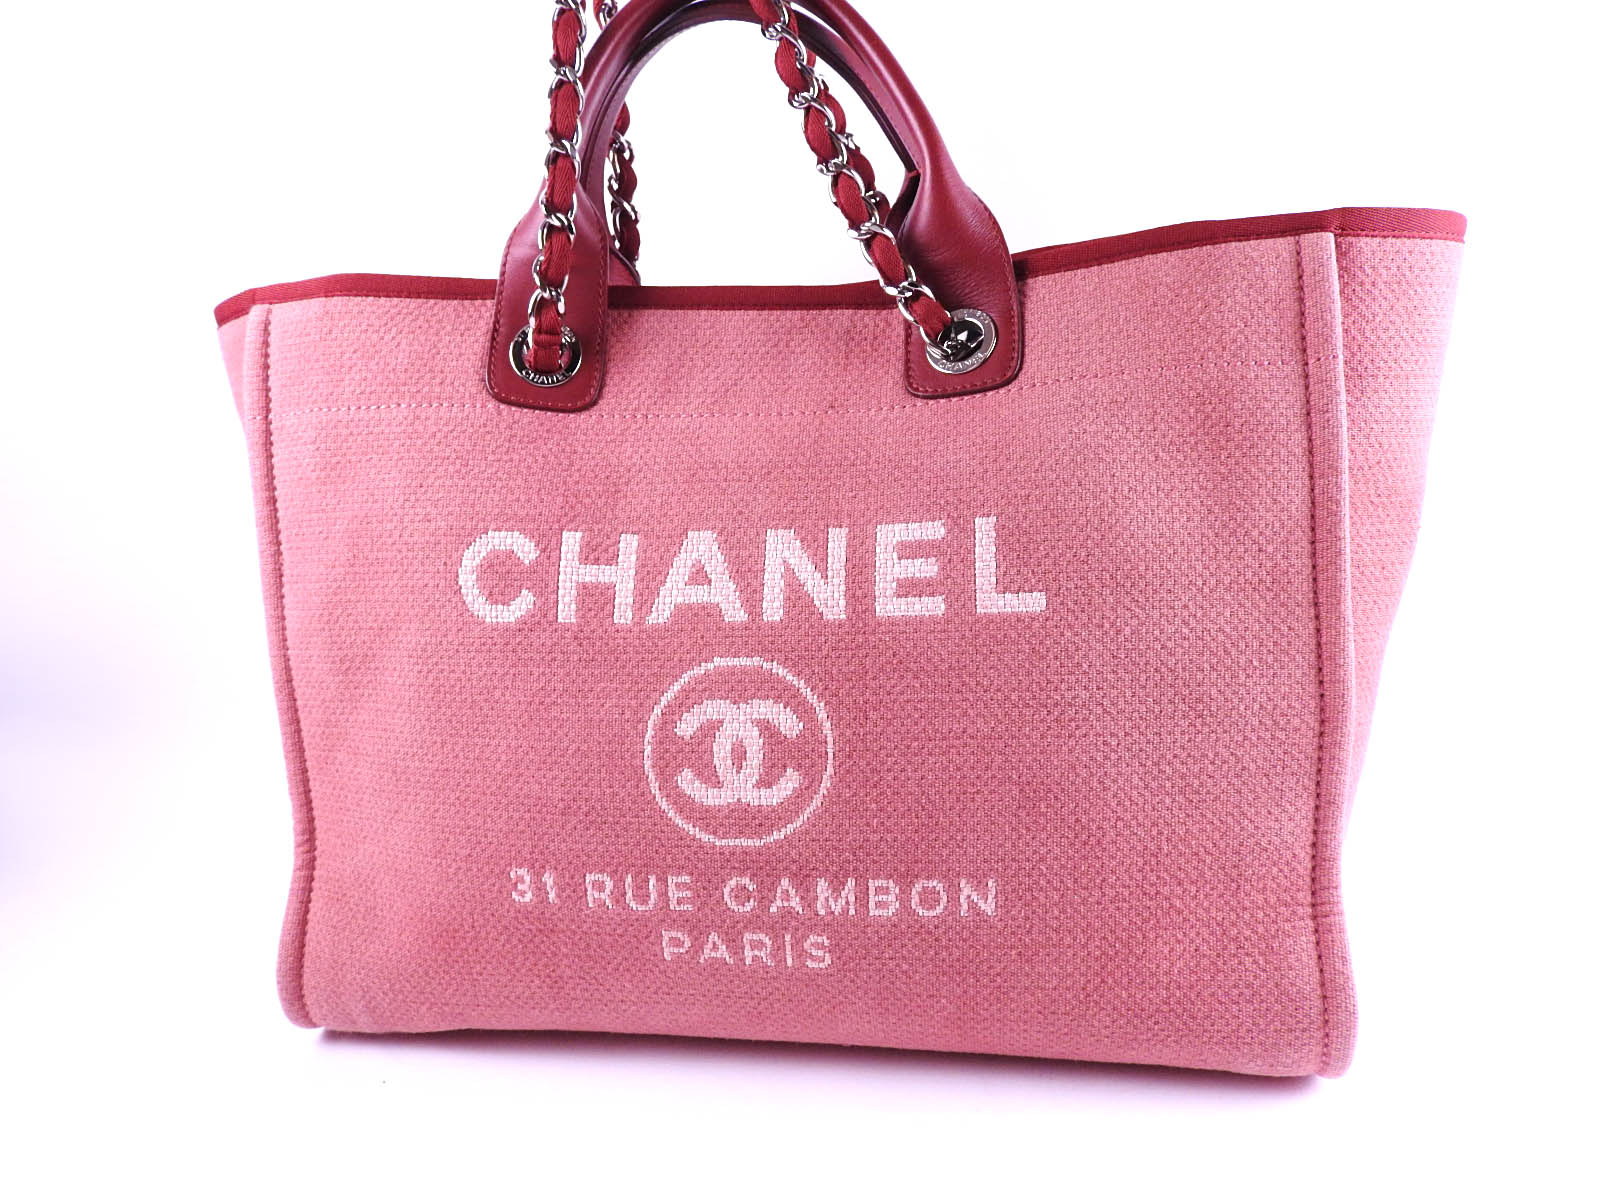 29b97d59e732 Auth CHANEL Deauville 2way Chain Shoulder Tote Bag Canvas Red White A66941  A-8480